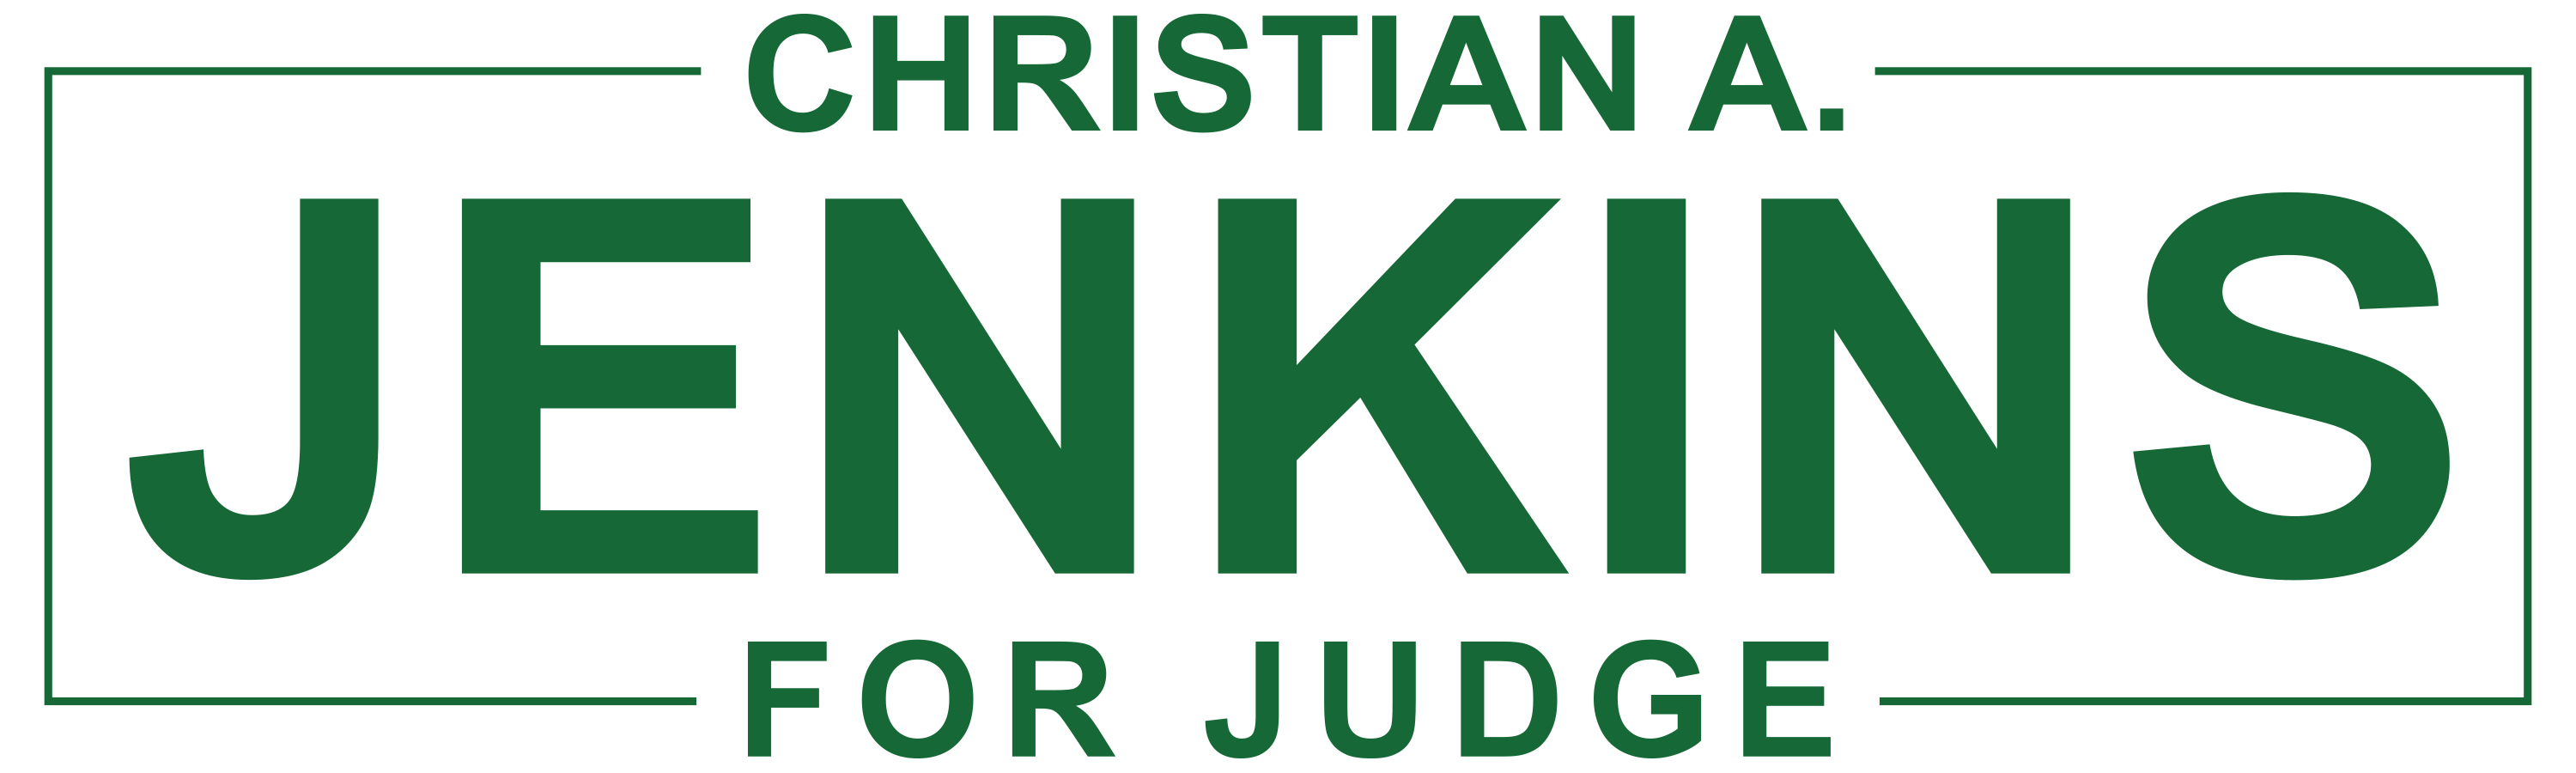 Christian A. Jenkins for Judge